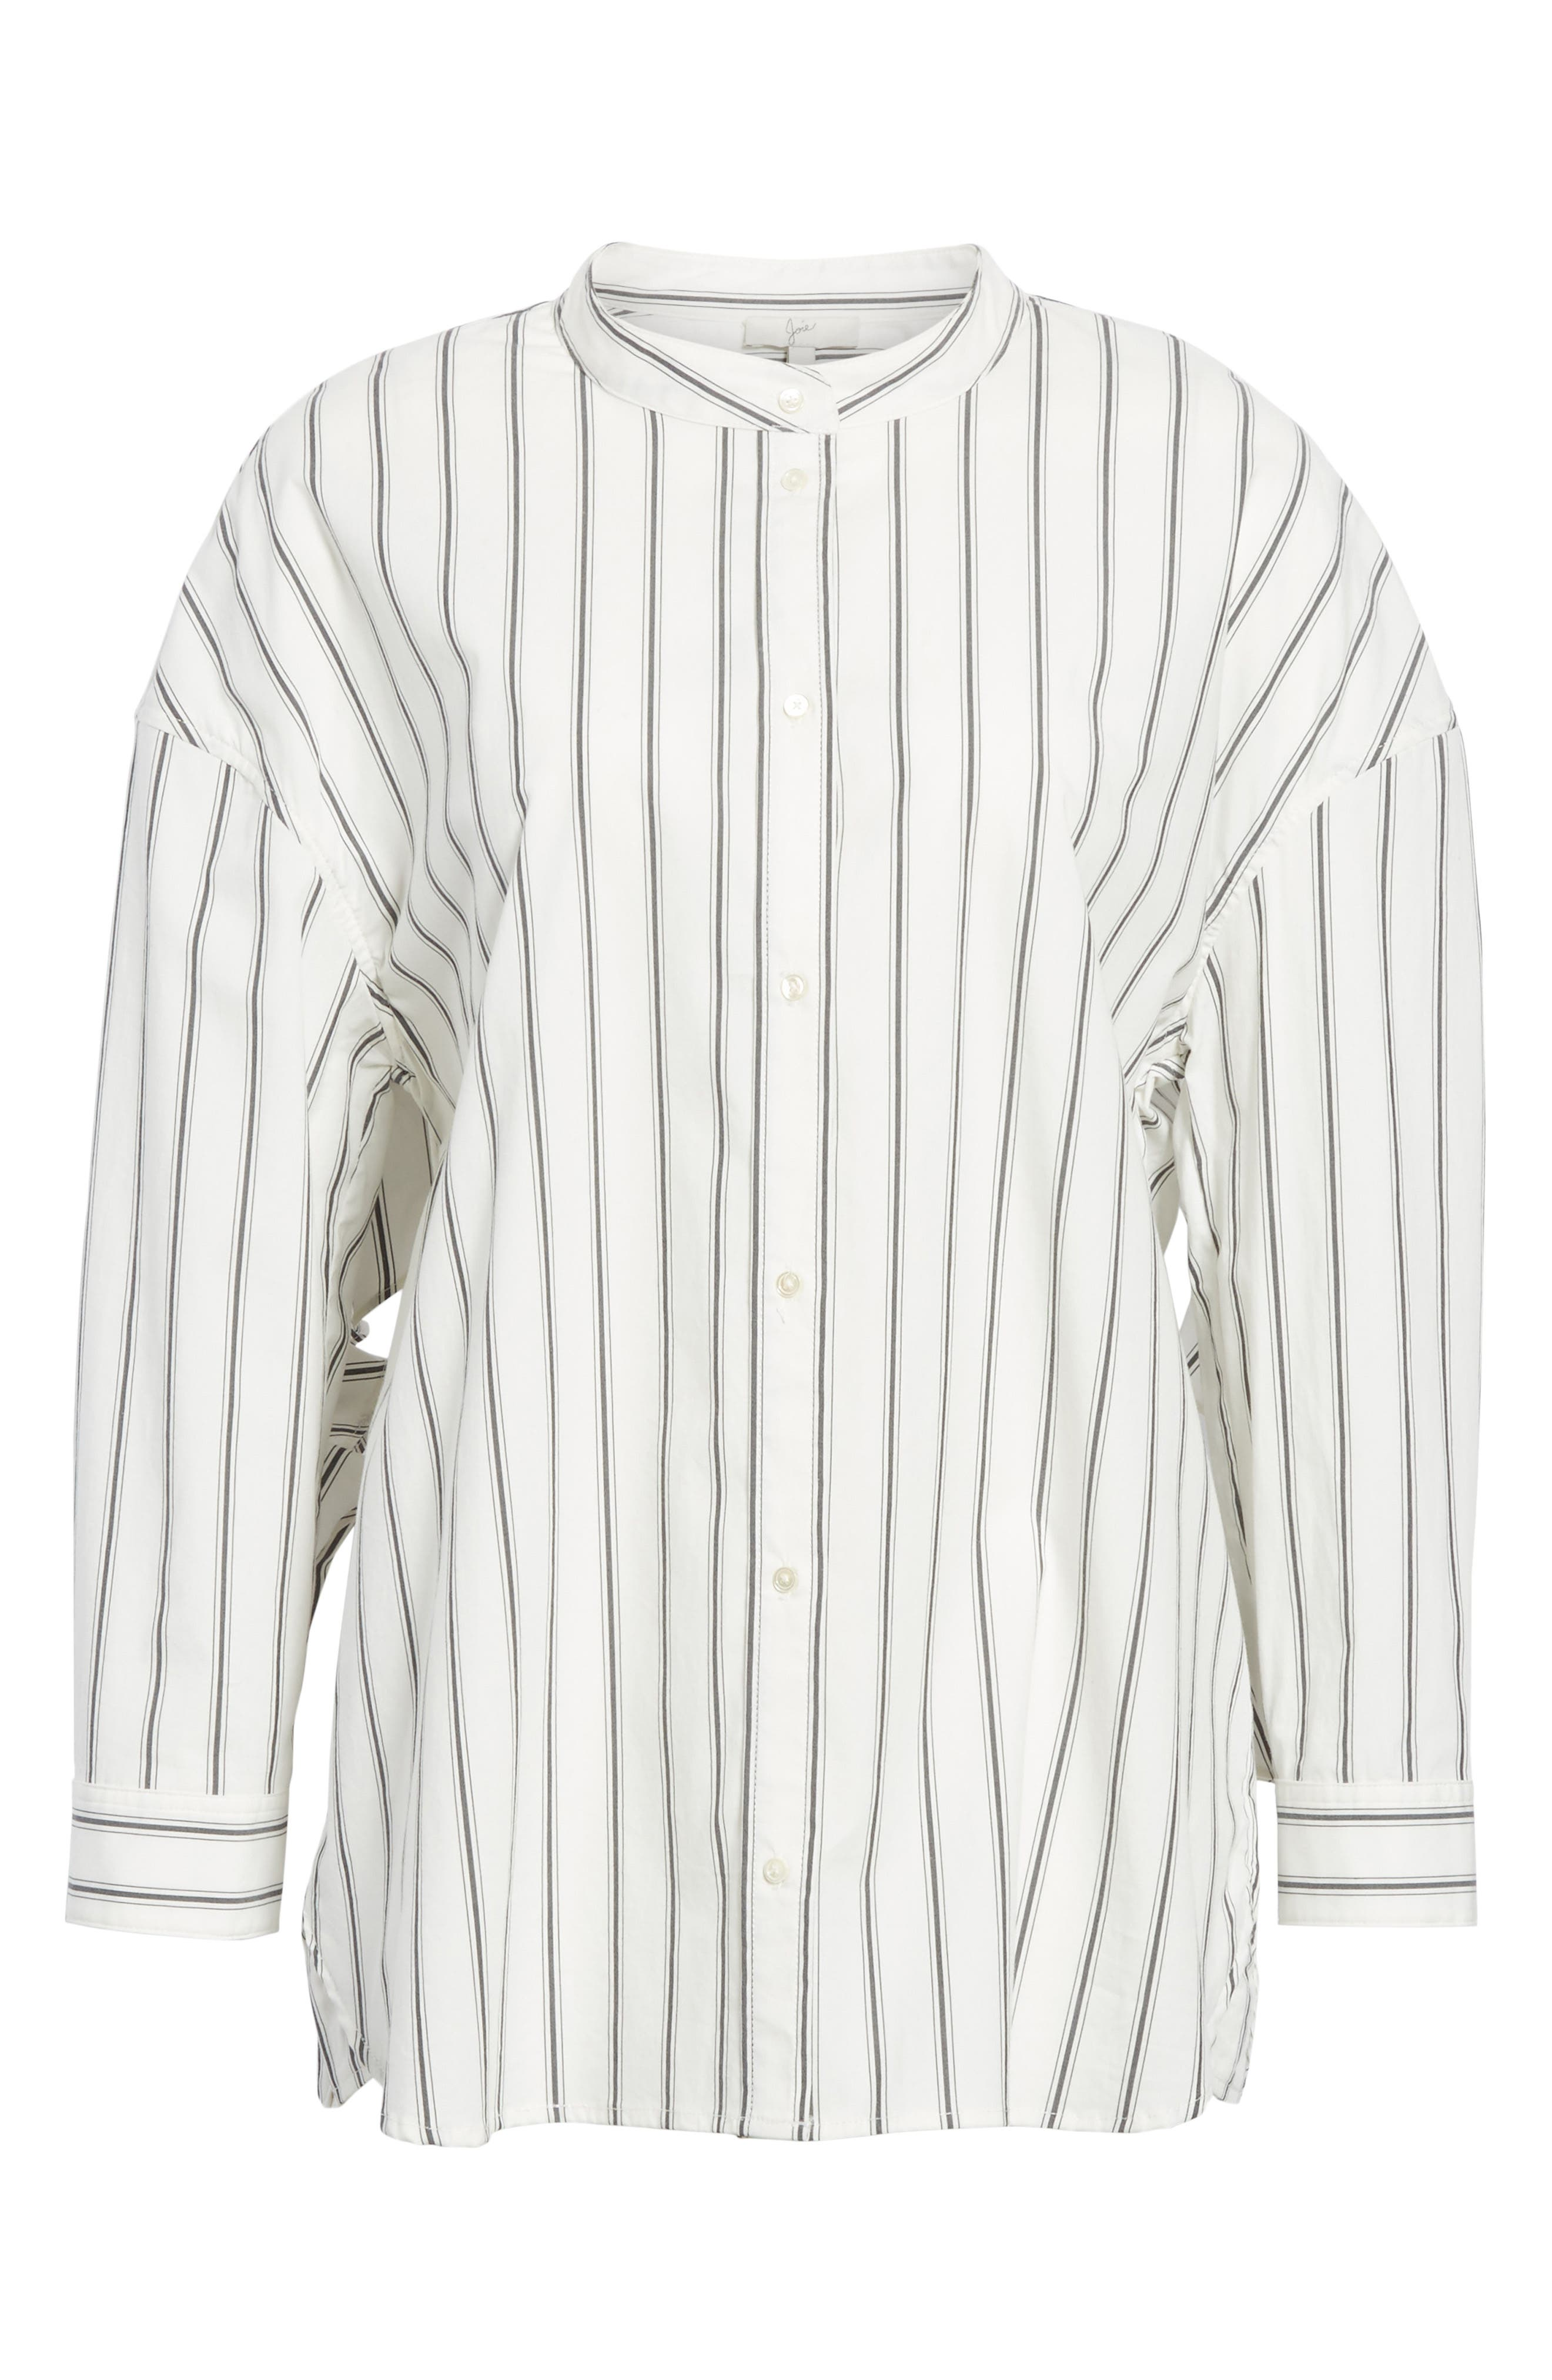 Poni Stripe Shirt,                             Alternate thumbnail 6, color,                             120